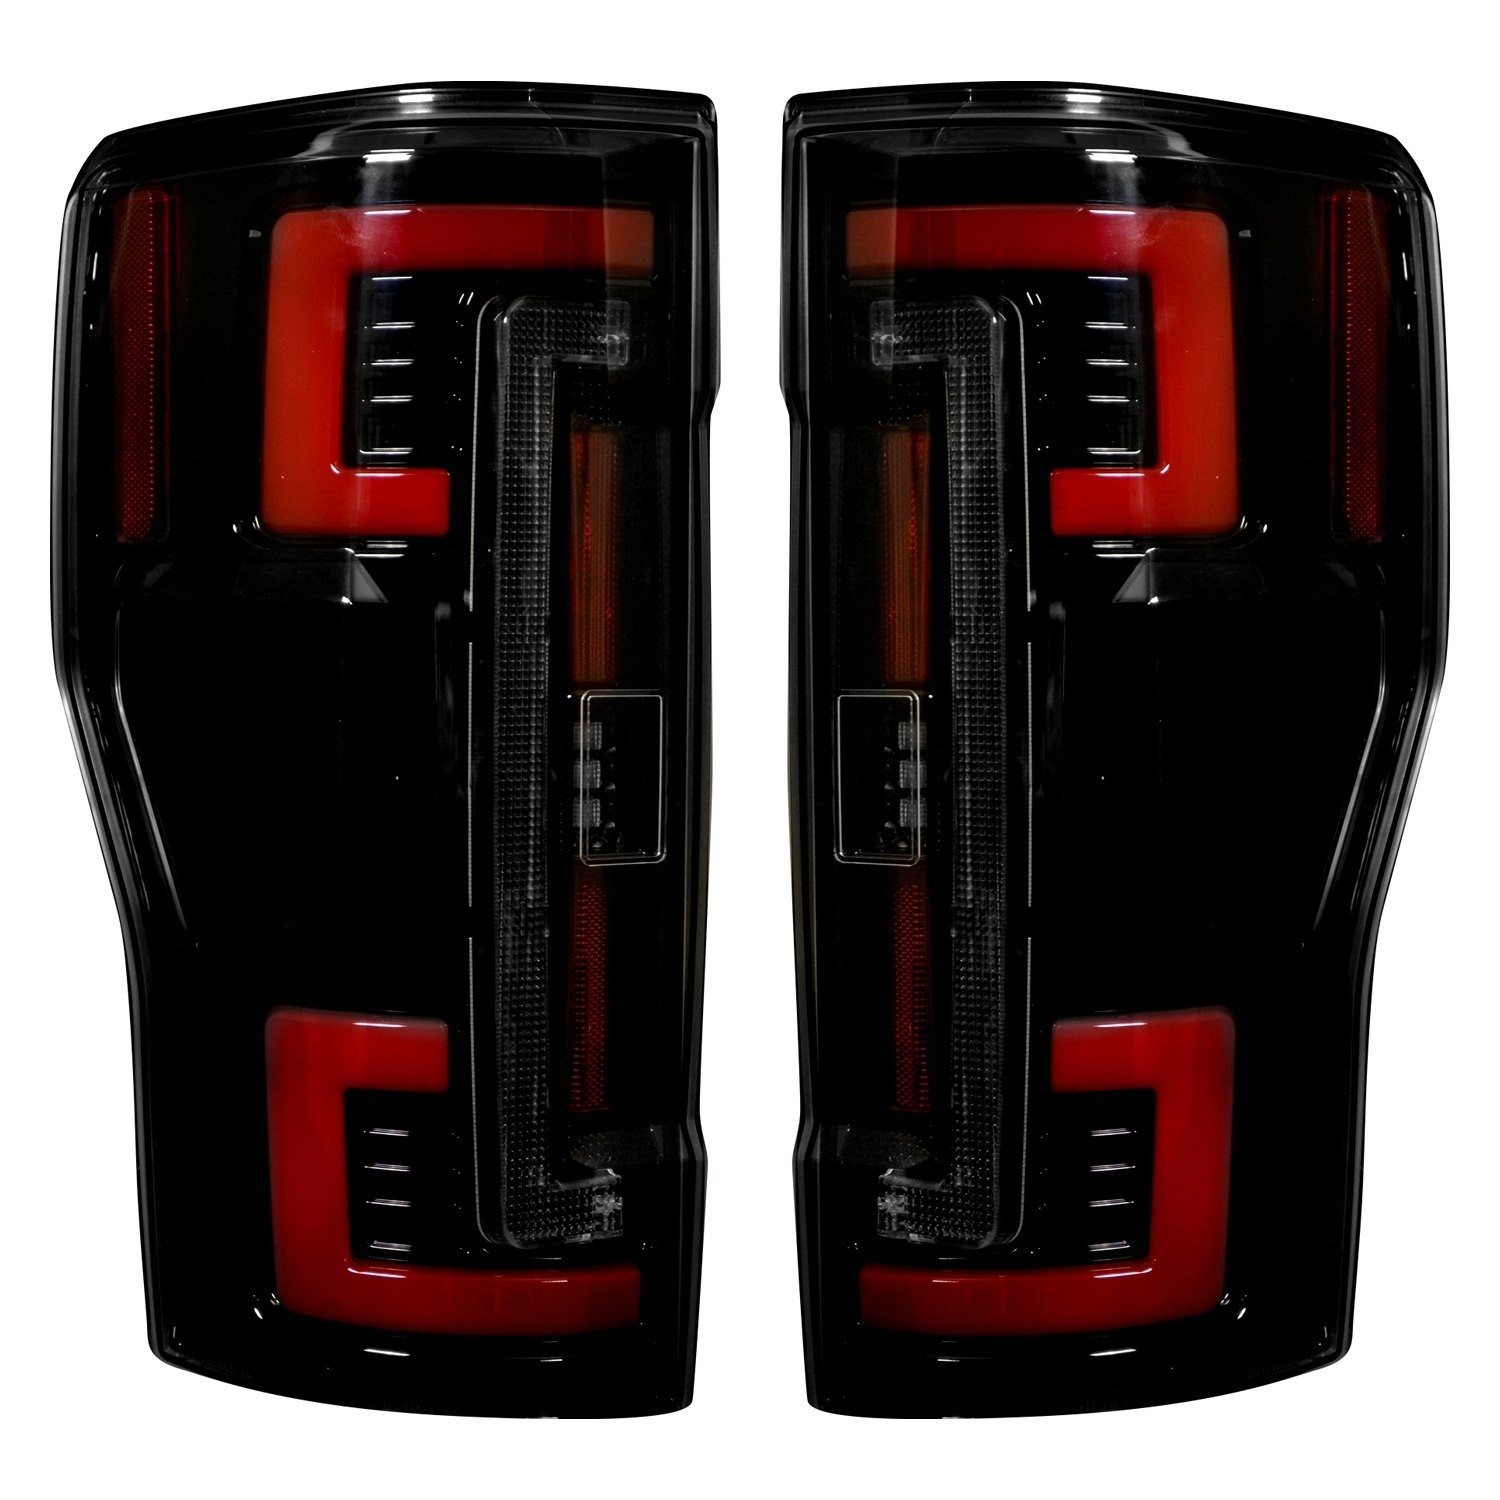 hight resolution of 2017 2018 ford f250 350 450 superduty truck recon 264299bk smoked oled rear tail lights pair lighting ford truck